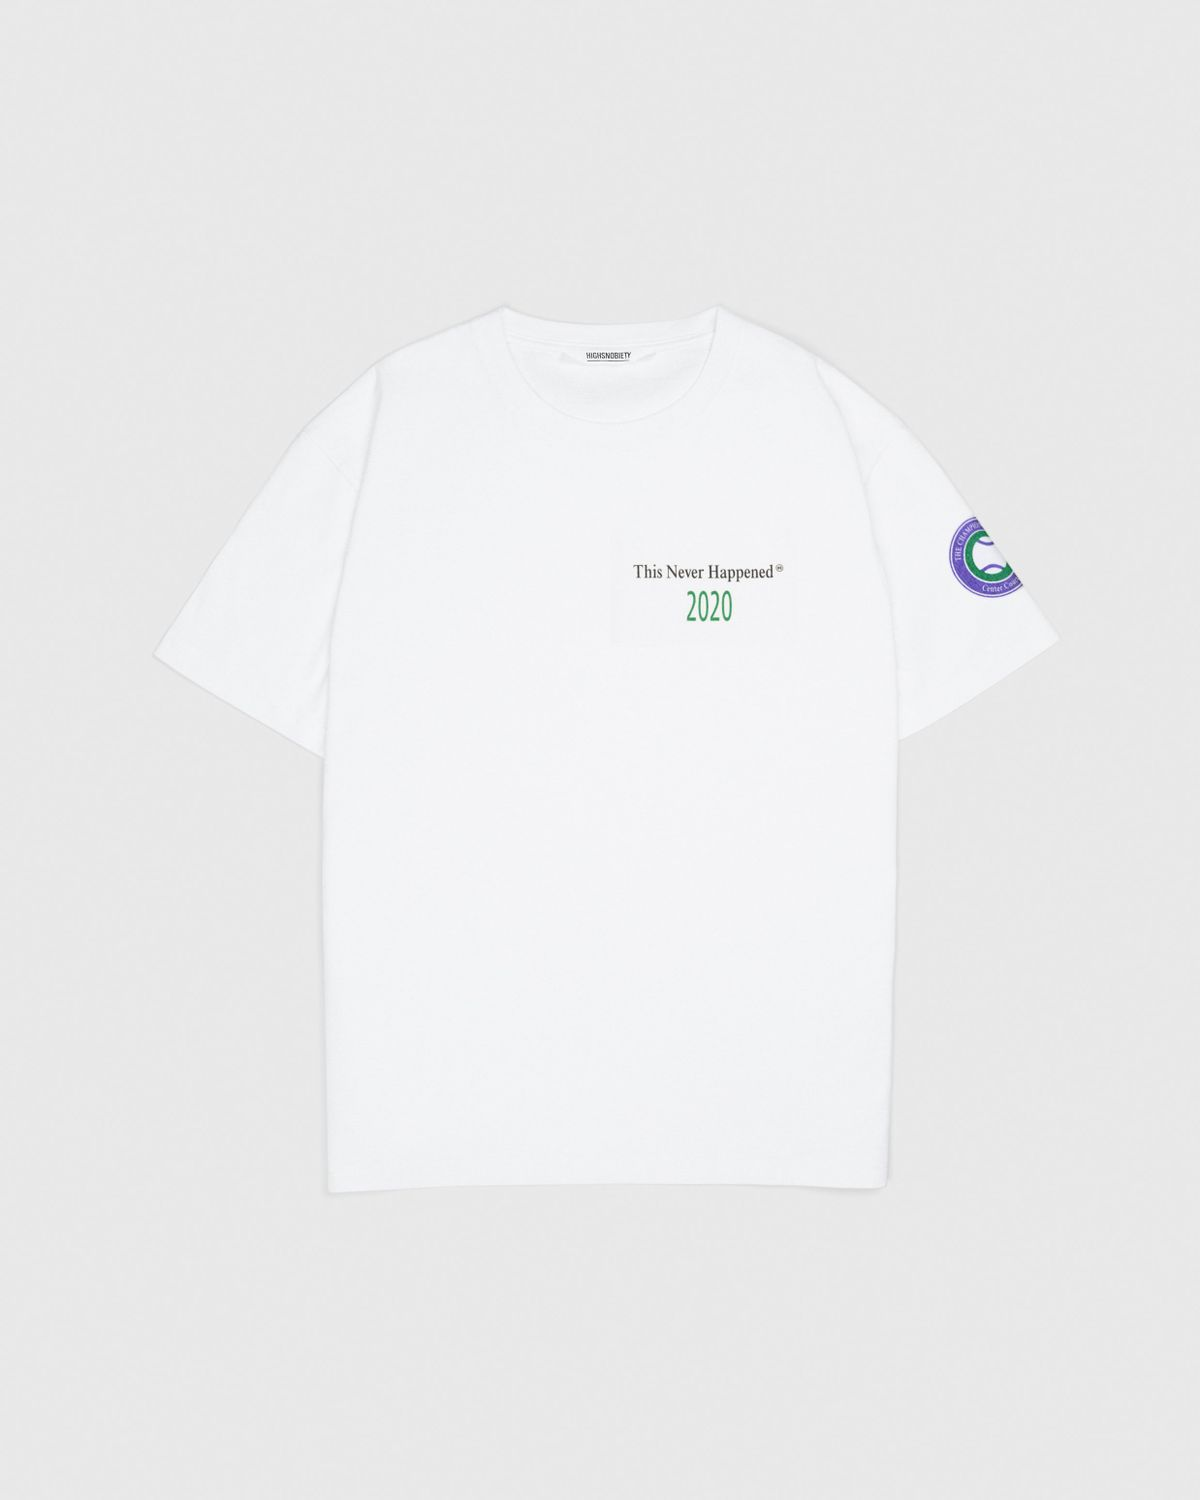 This Never Happened - Tennis Tournament T-Shirt White - Image 2